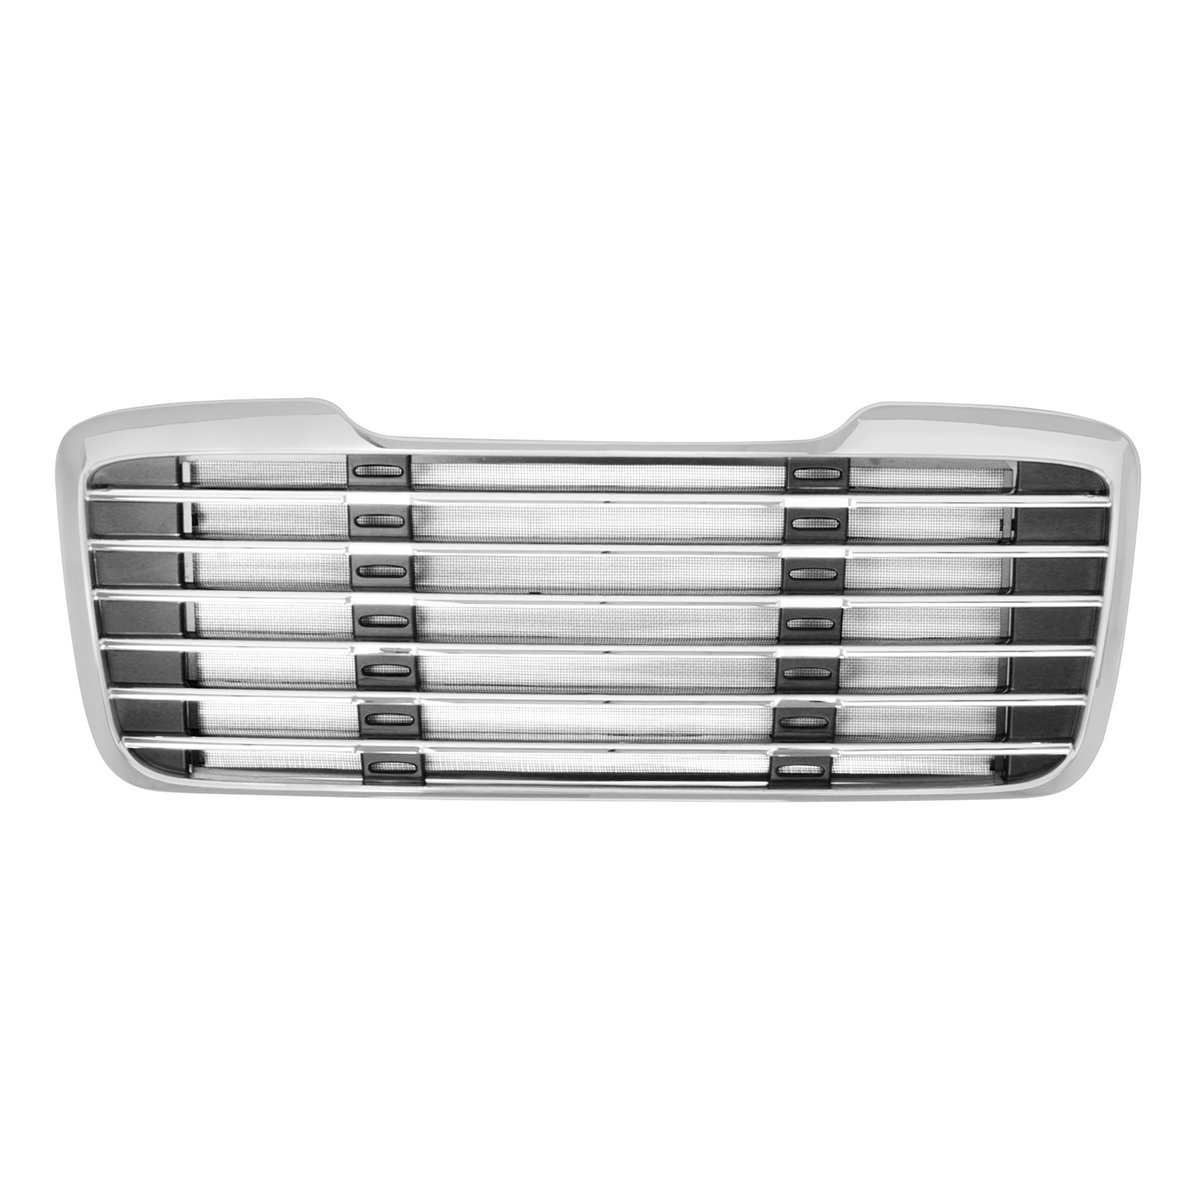 Grand General 89305 Chrome Plastic Grille with Black Steel Bug Screen for M2 Freightliner